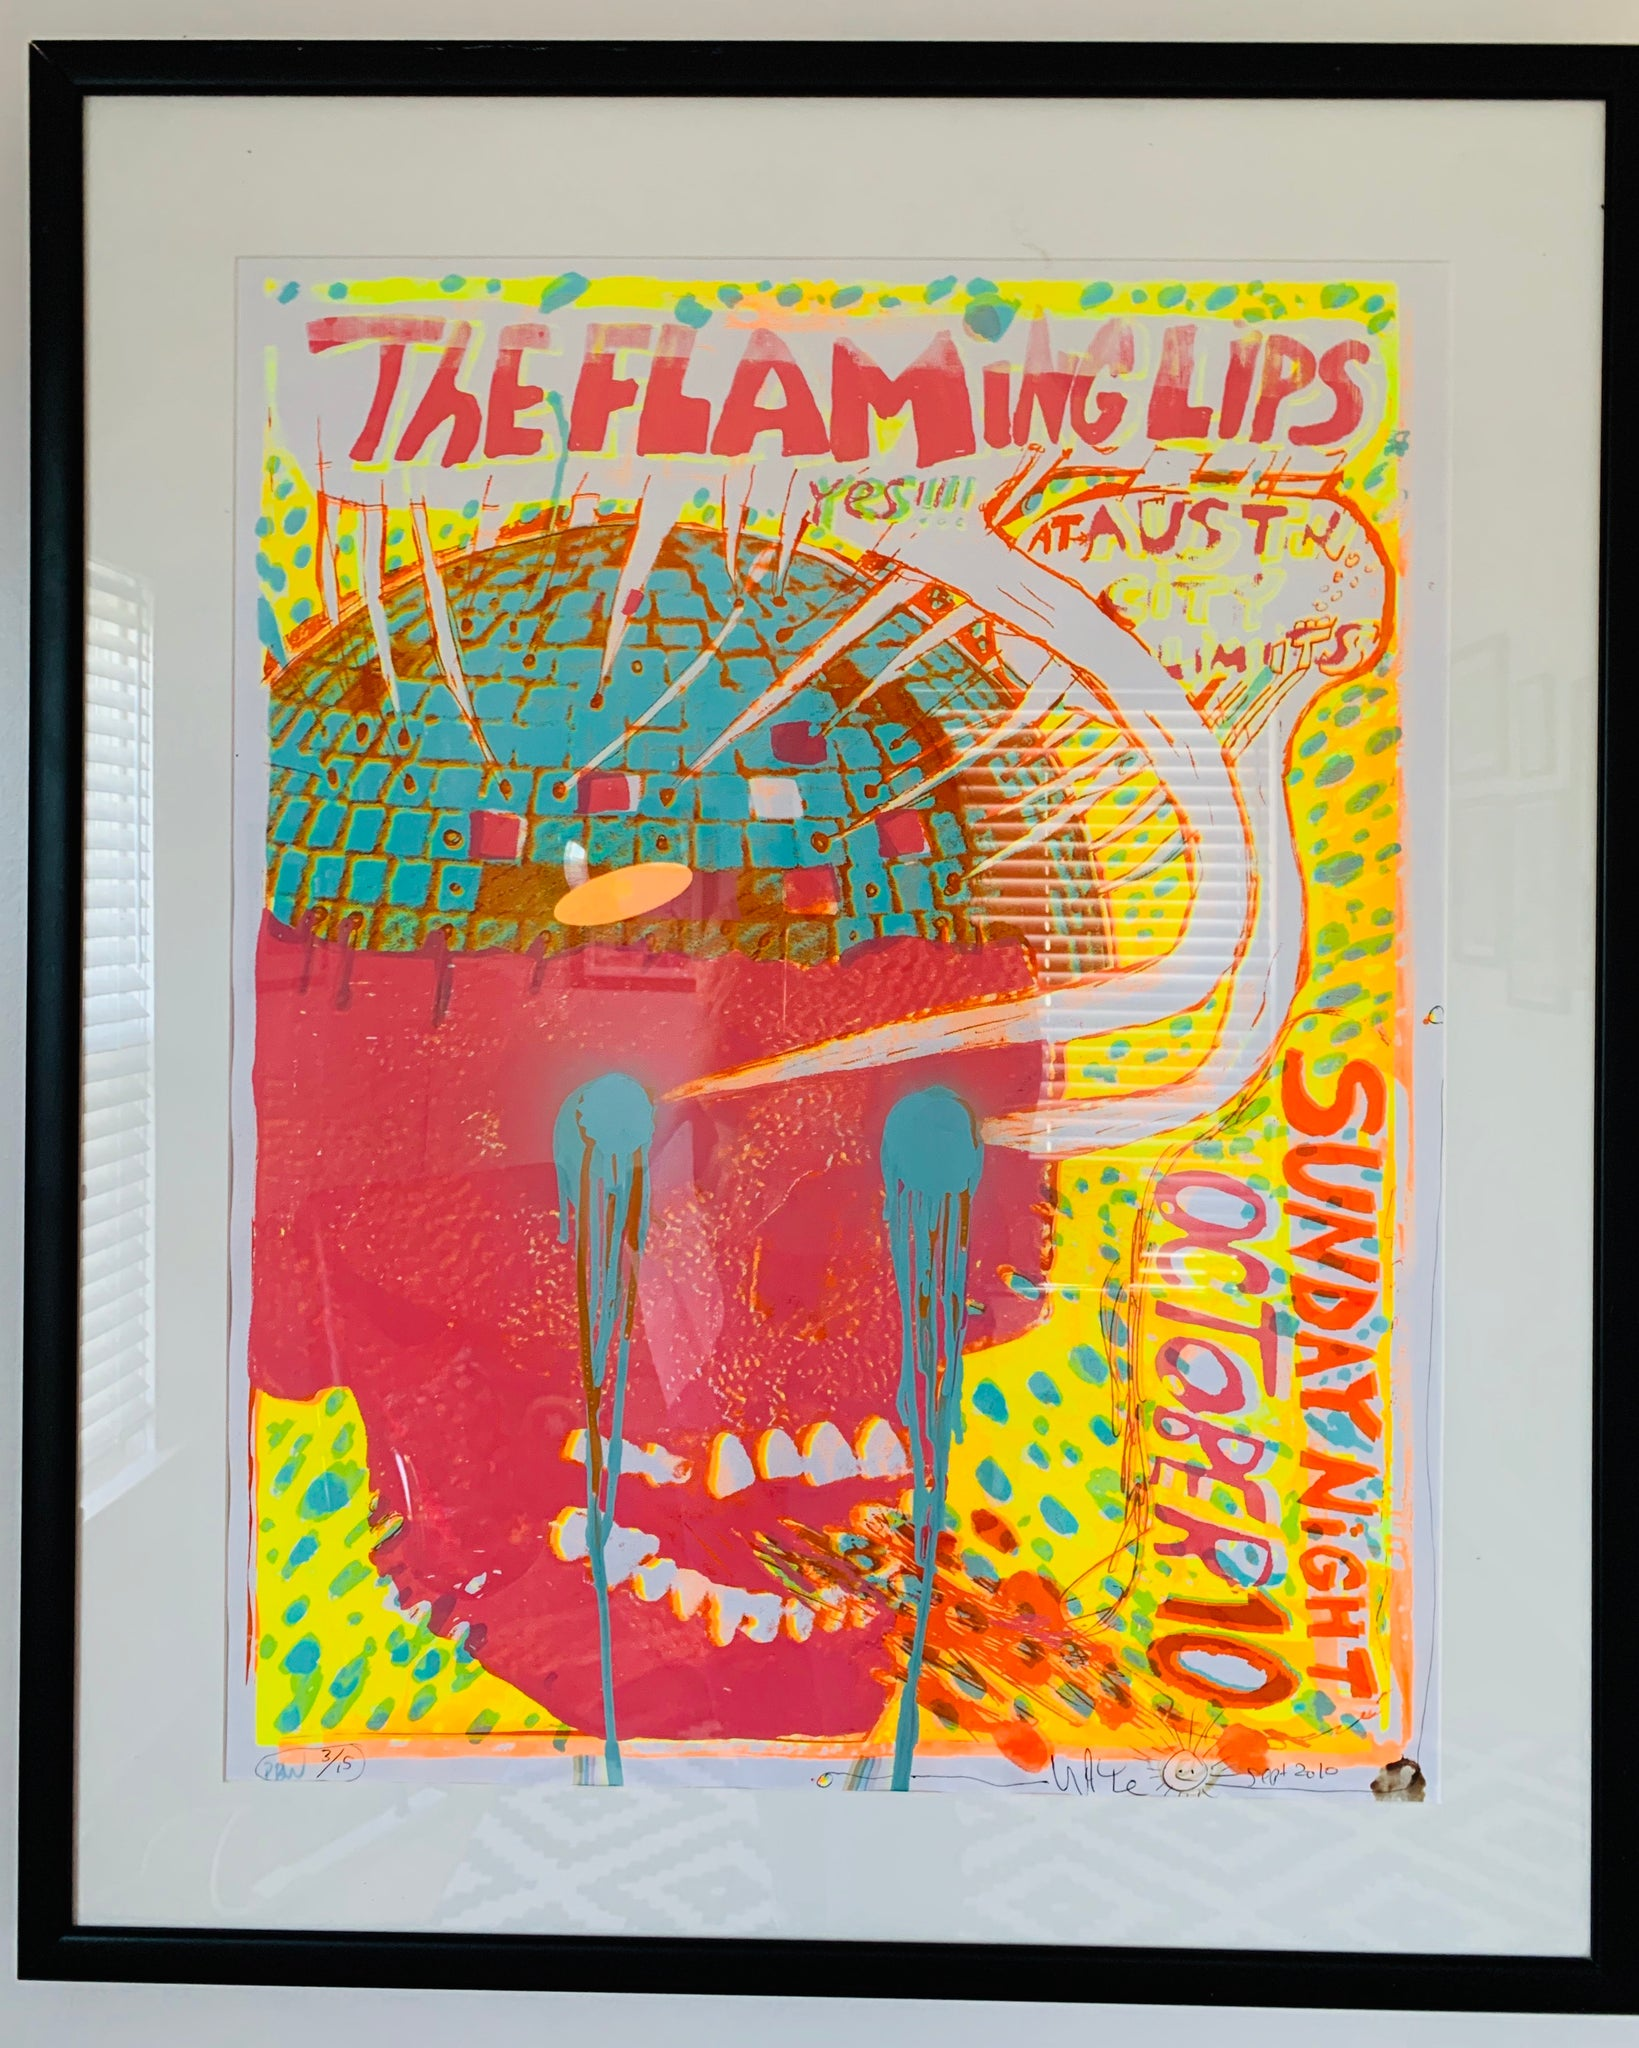 Limited Flaming Lips at Austin City Limits poster